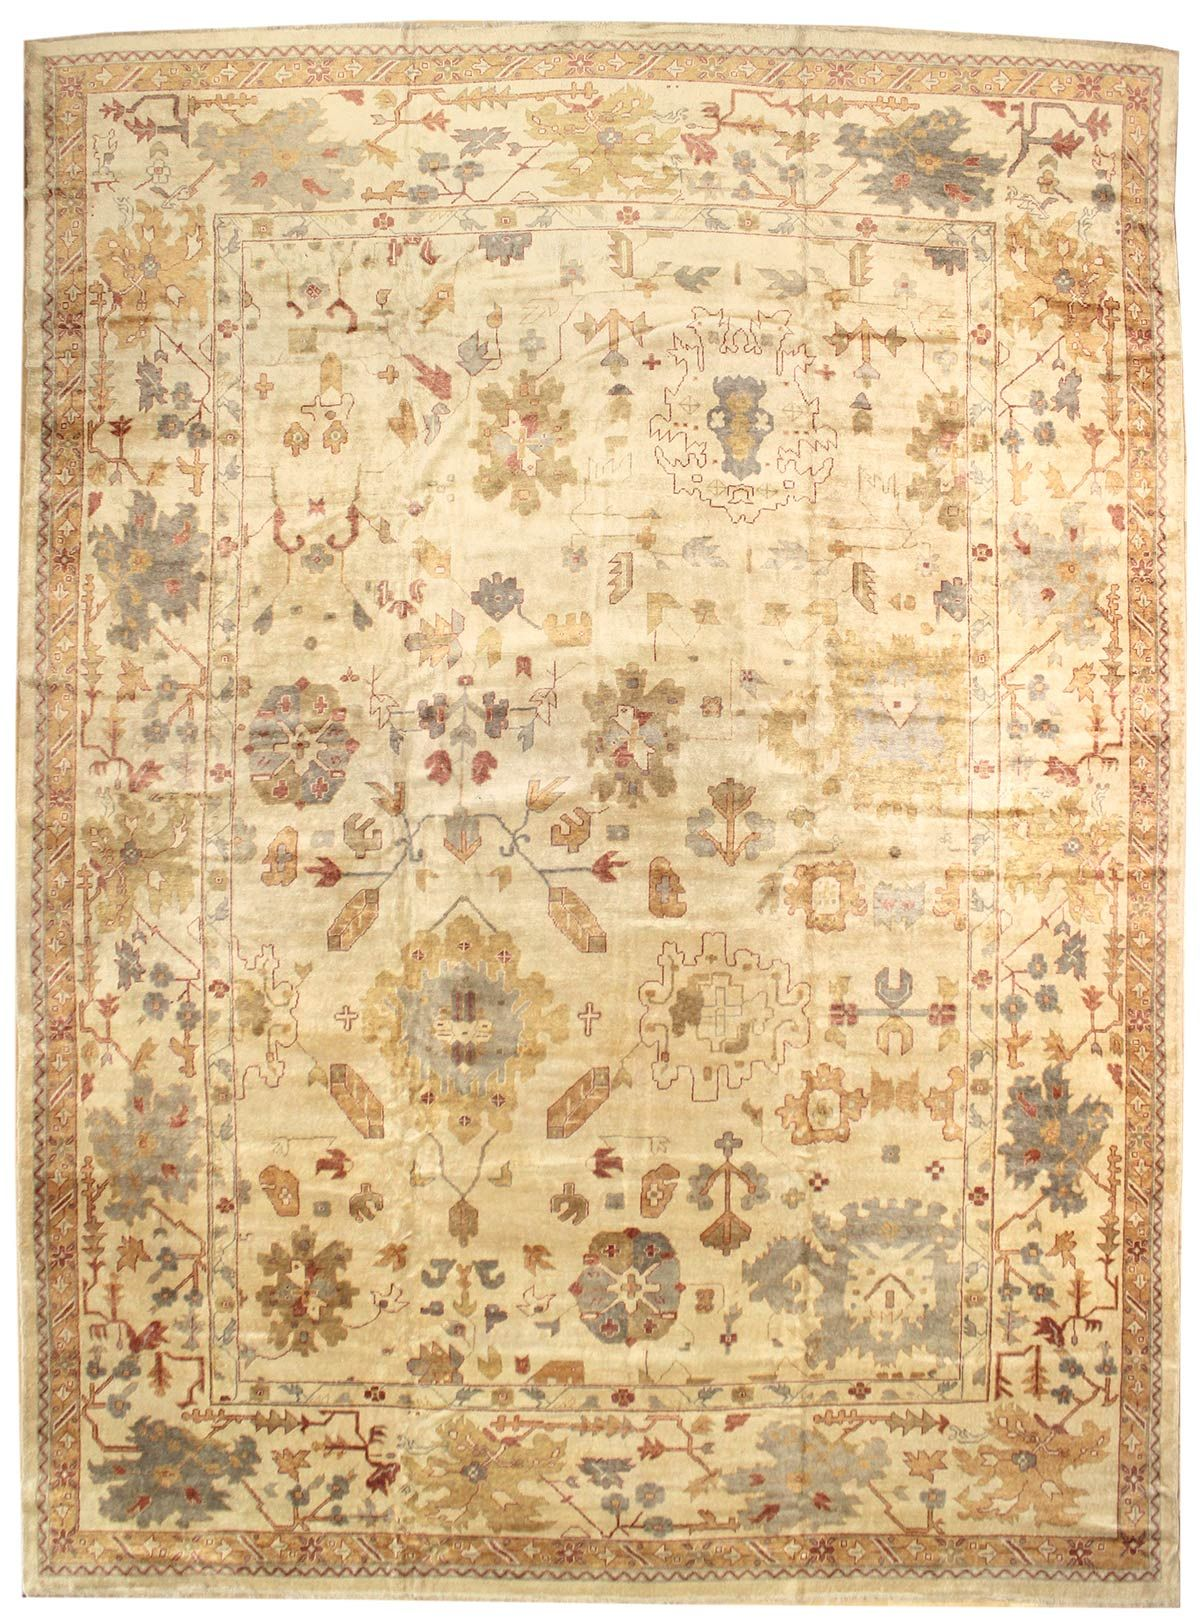 Oushak Rugs Gallery Angora Oushak Rug Hand Knotted In Turkey Size 15 Feet 1 Inch Es X 19 Feet 4 Inch Es Rugs Oushak Rug Rug Gallery